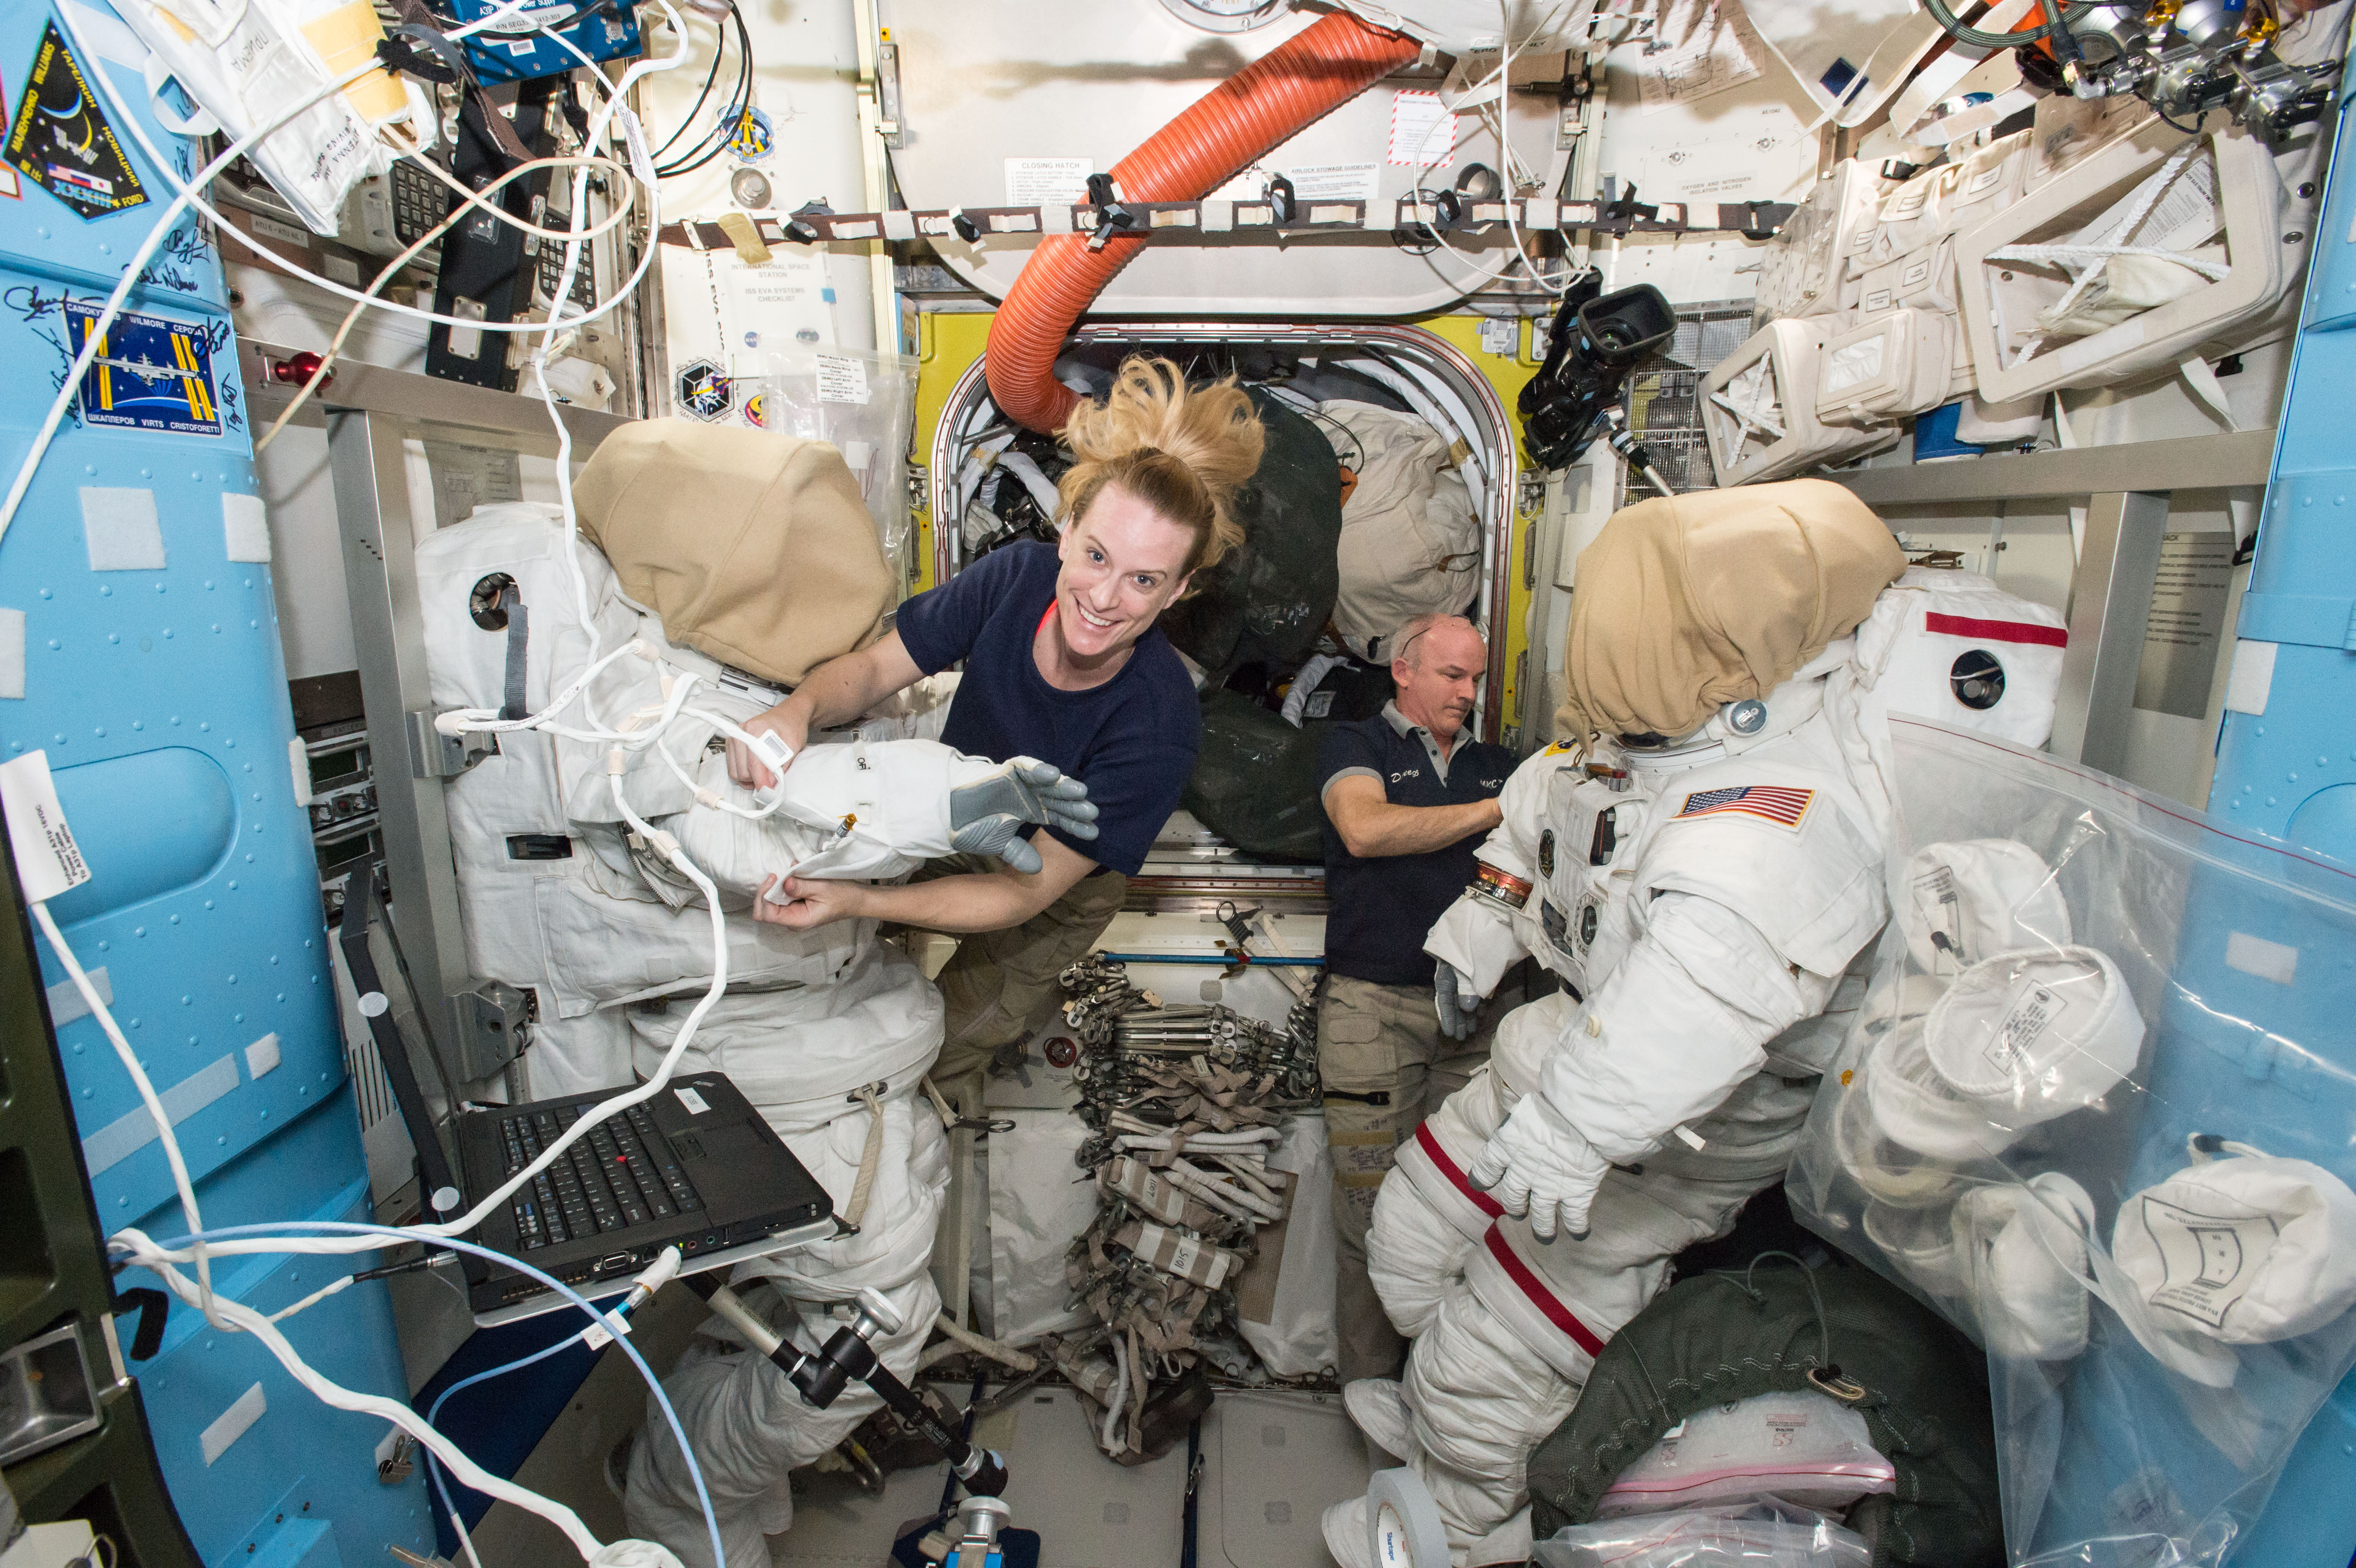 Astronaut Kate Rubins and space station commander Jeff Williams check out the spacesuits they will wear Friday. Credit: NASA